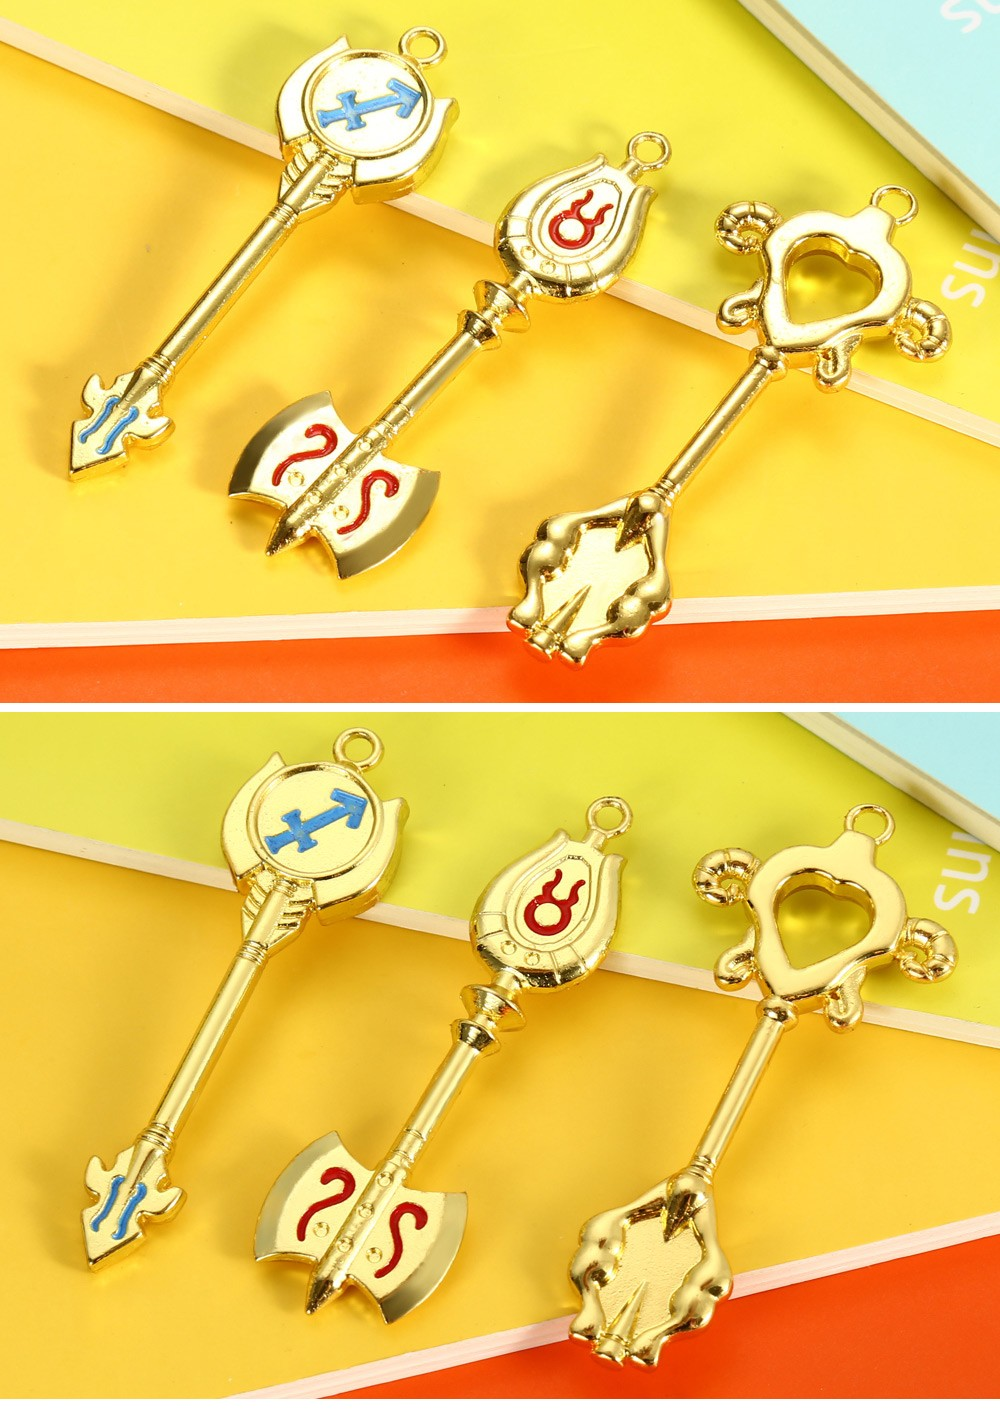 Key Chain Hanging Pendant Keyring Movie Product for Decoration - 18pcs / set